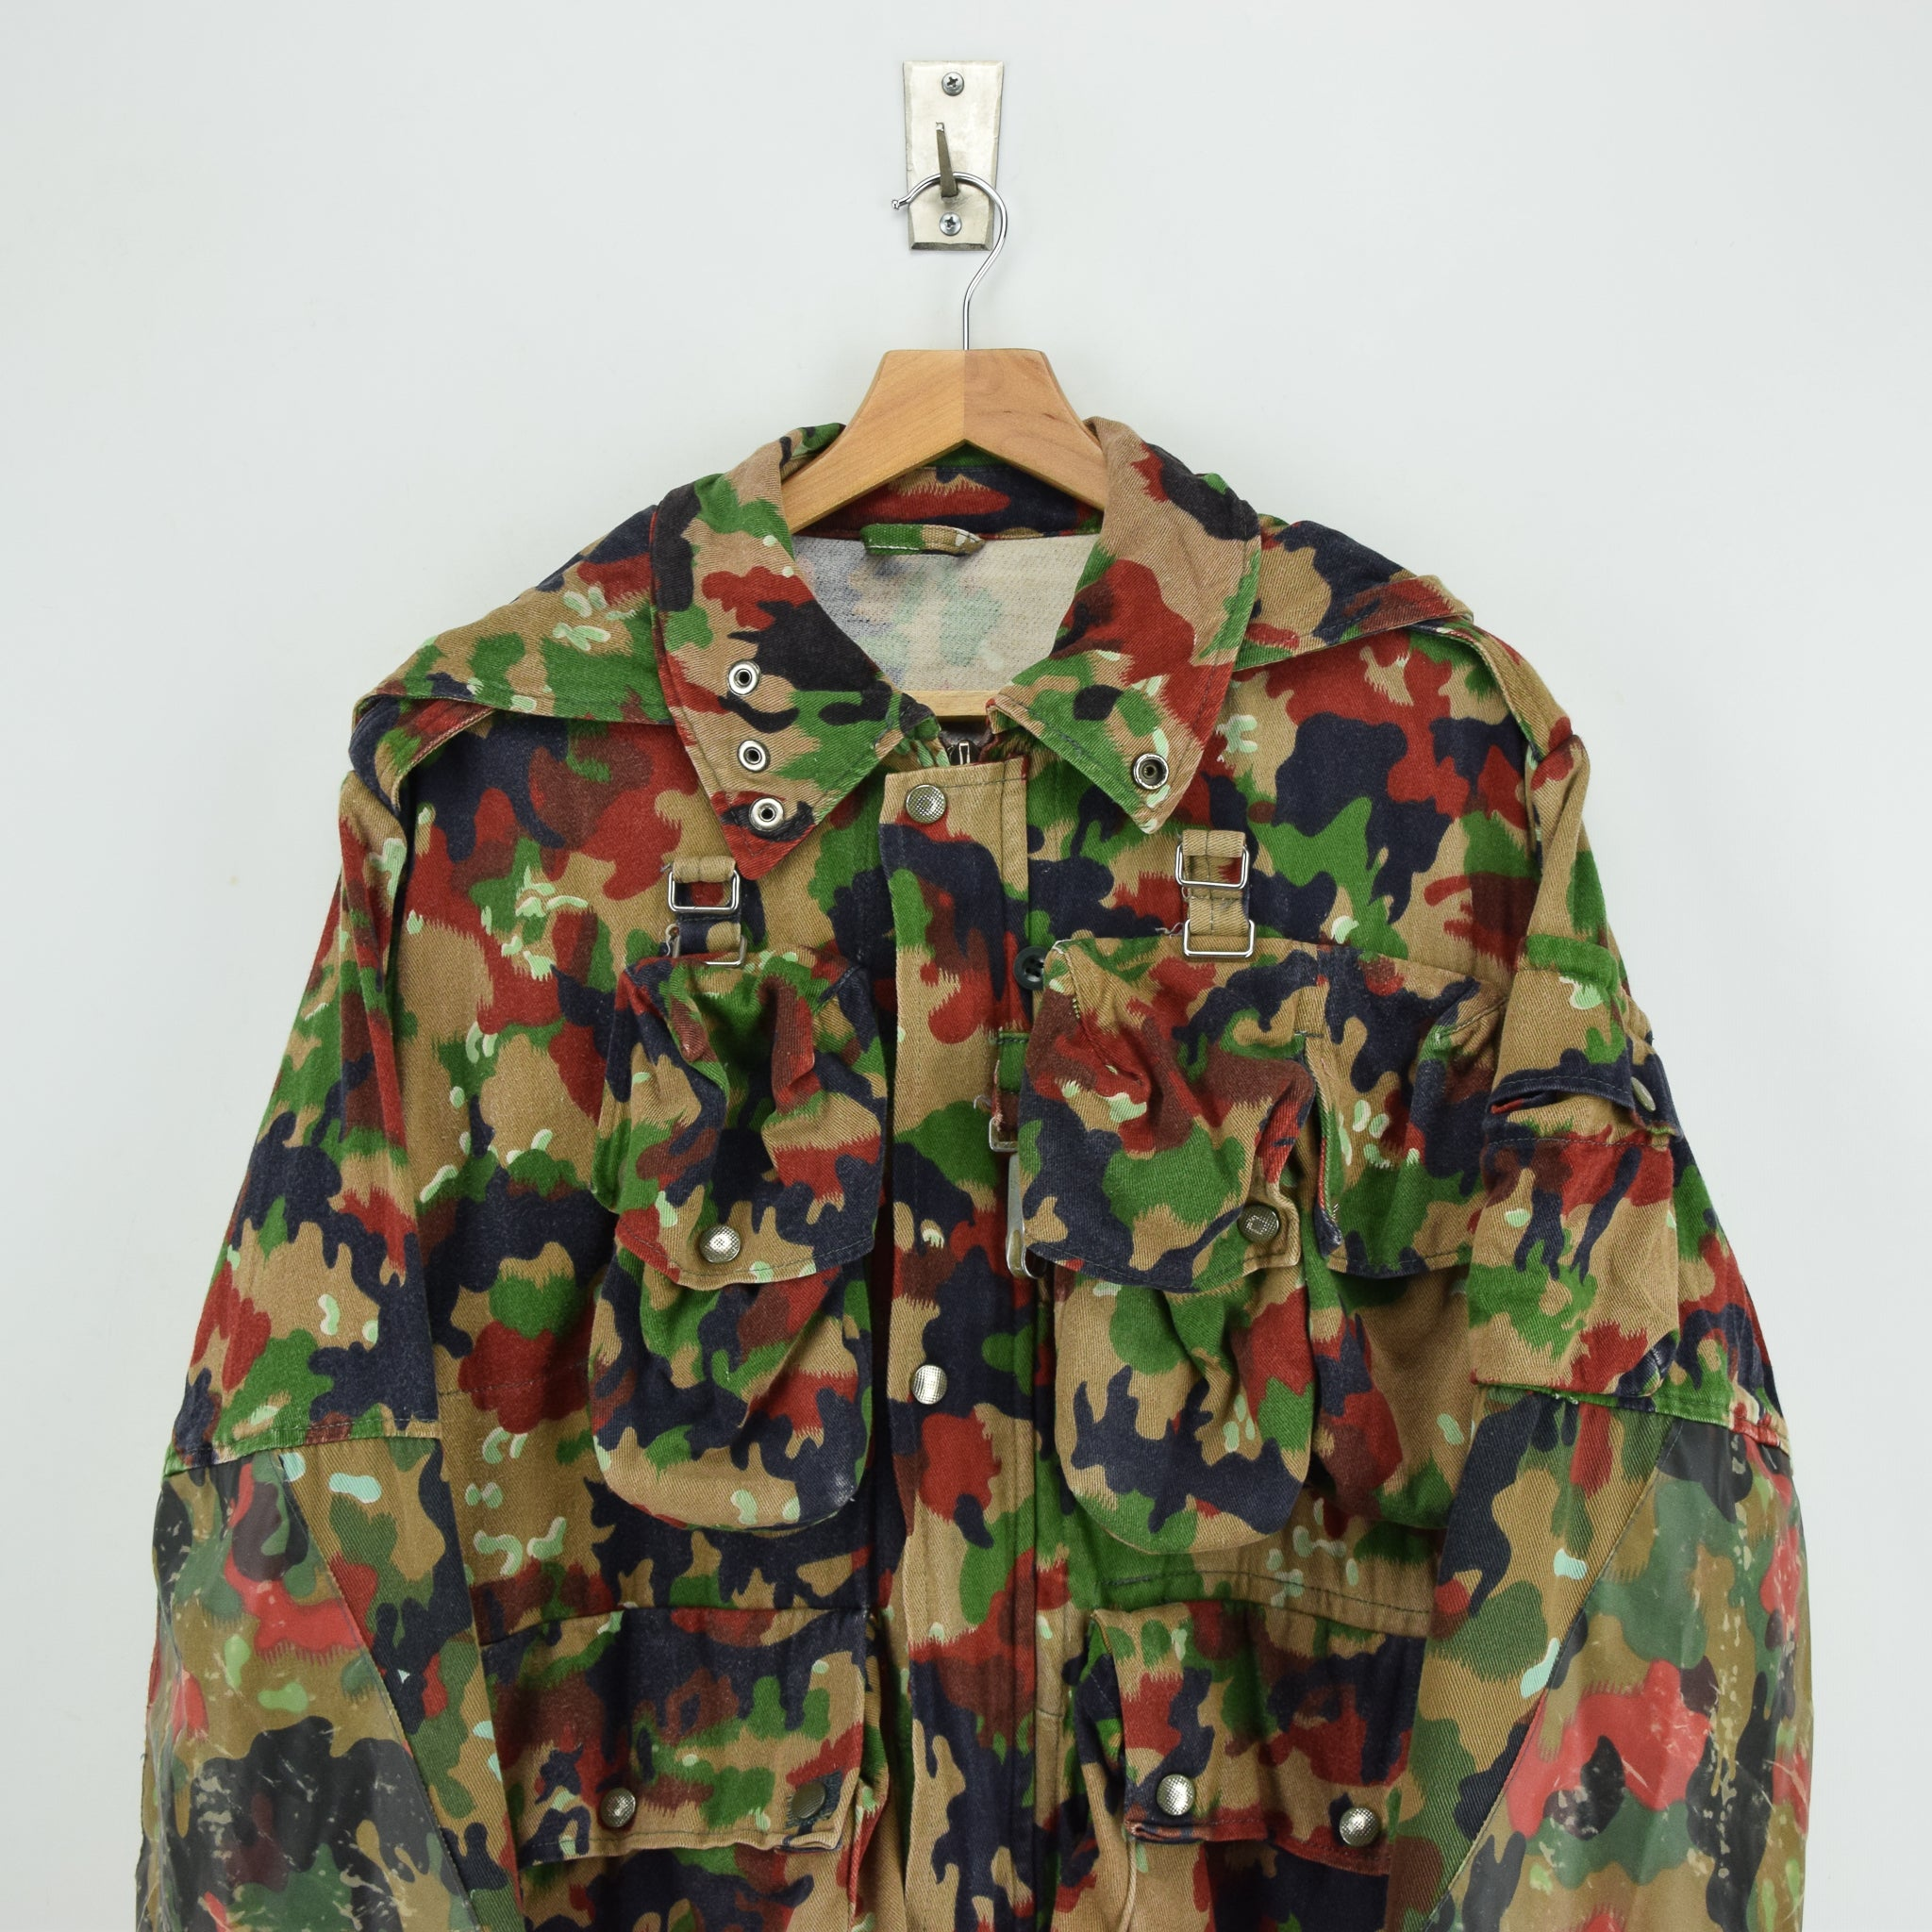 Vintage 70s Swiss Army Alpenflage Camo Sniper Combat Field Jacket S / M chest